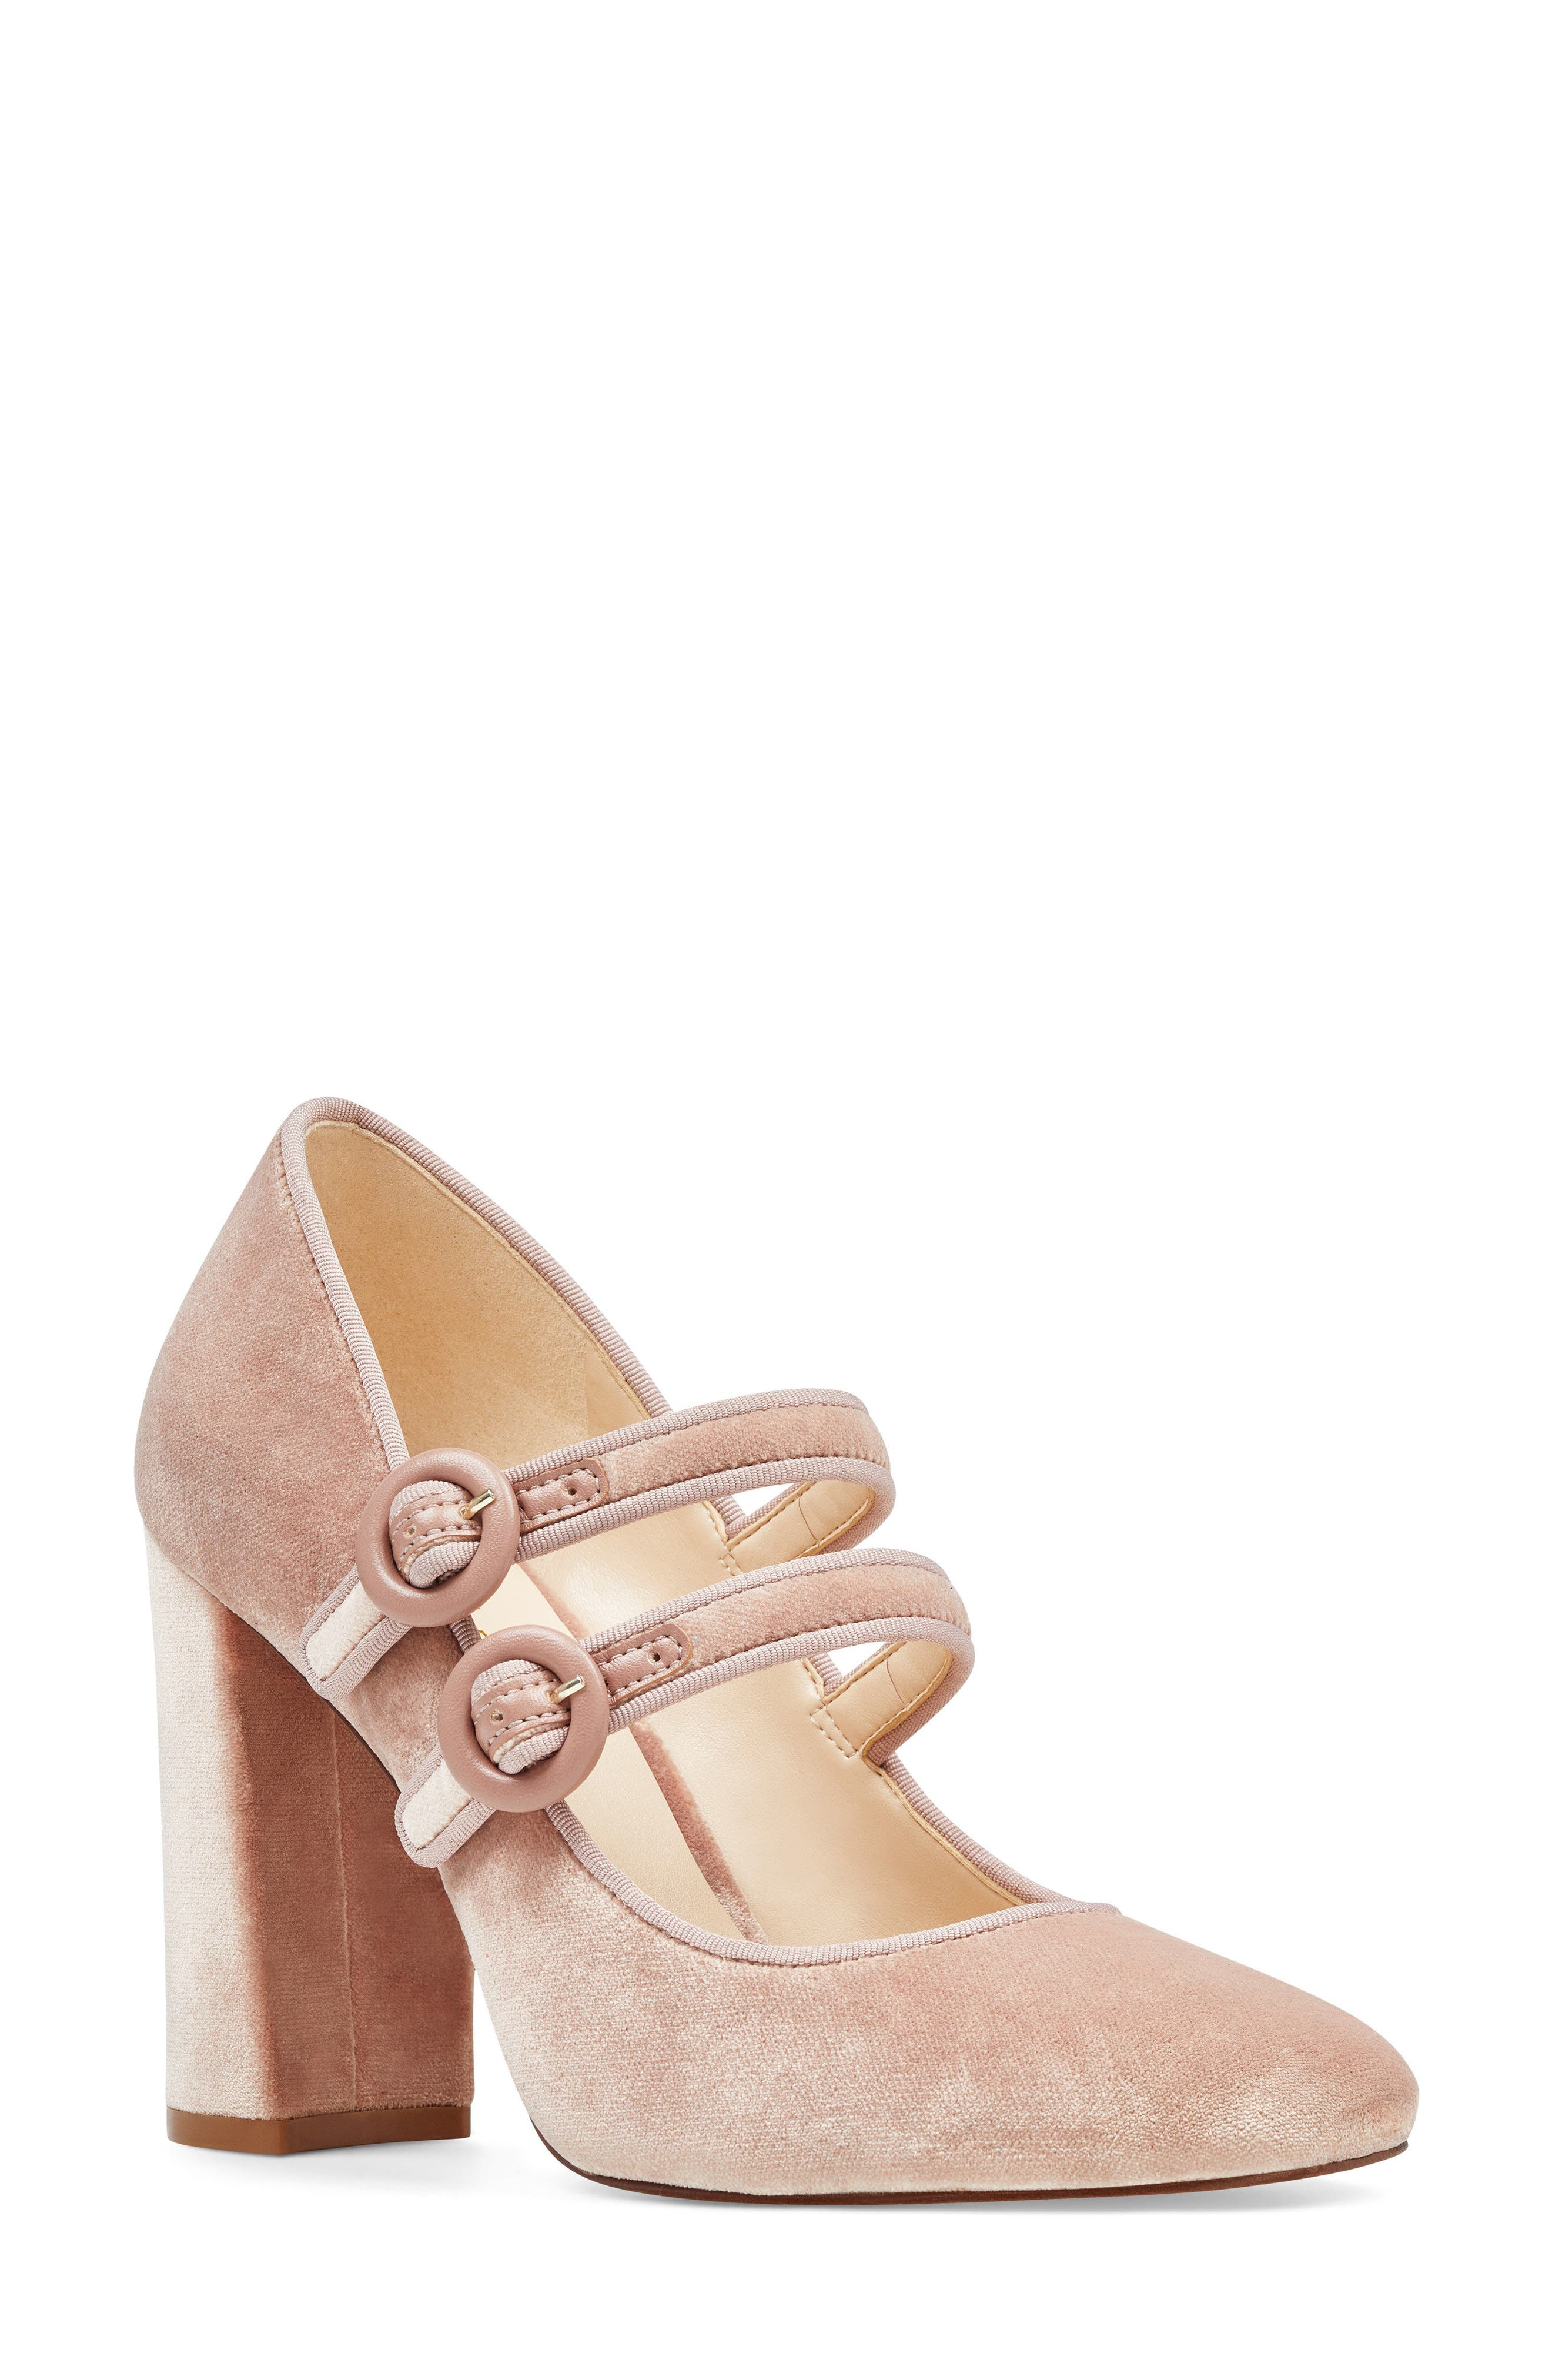 Alternate Image 1 Selected - Nine West Dabney Double Strap Mary Jane Pump (Women)